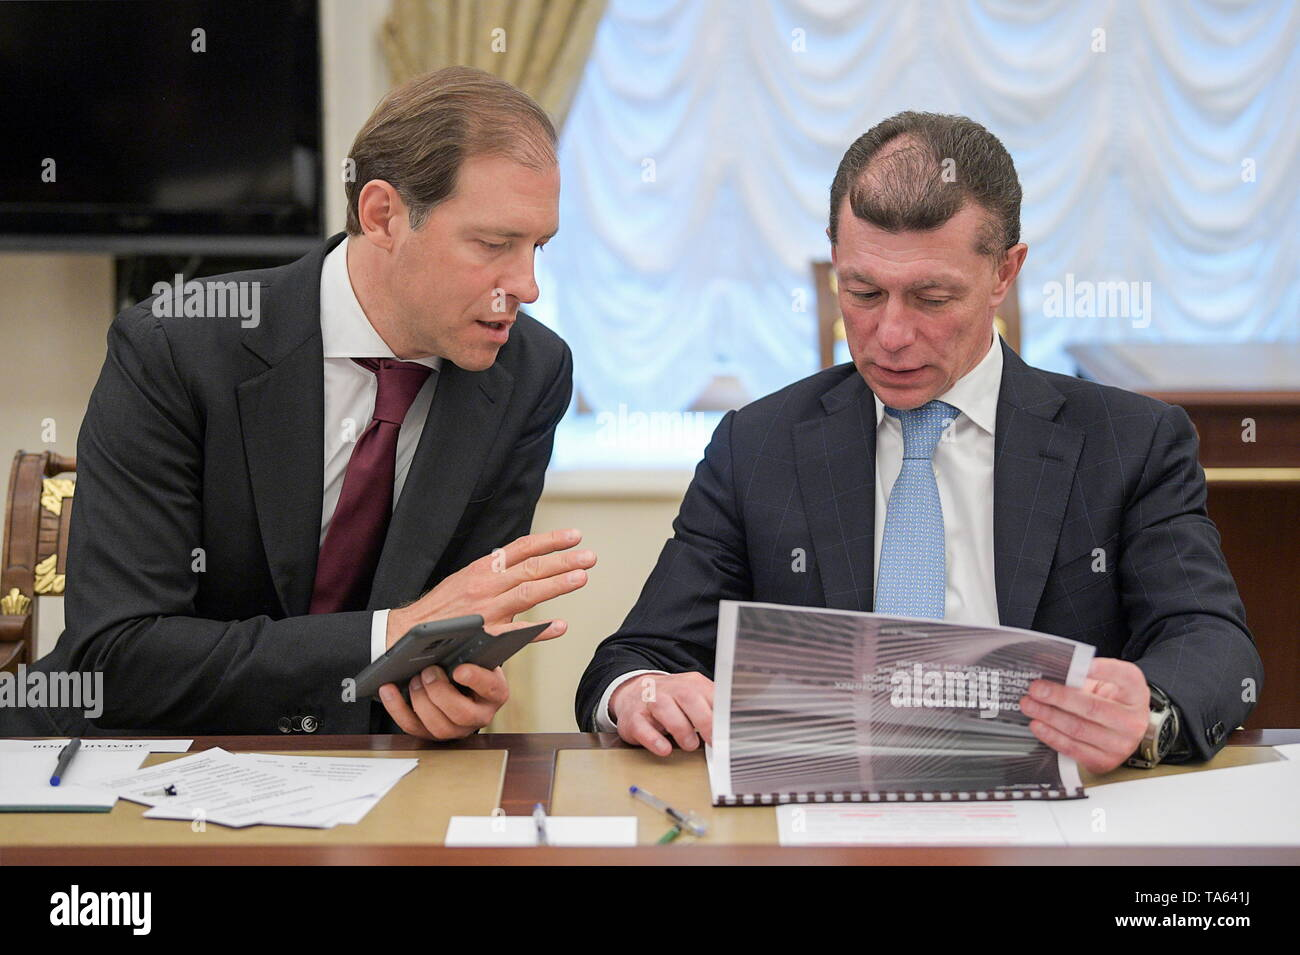 Moscow, Russia. 22nd May, 2019. MOSCOW, RUSSIA - MAY 22, 2019: Russia's Industry and Trade Minsiter Denis Manturov (L) and Russia's Labour and Social Safety Minister Maxim Topilin during a meeting of Russia's President Vladimir Putin with members of the Russian Government at the Moscow Kremlin. Alexei Druzhinin/Russian Presidential Press and Information Office/TASS Credit: ITAR-TASS News Agency/Alamy Live News - Stock Image